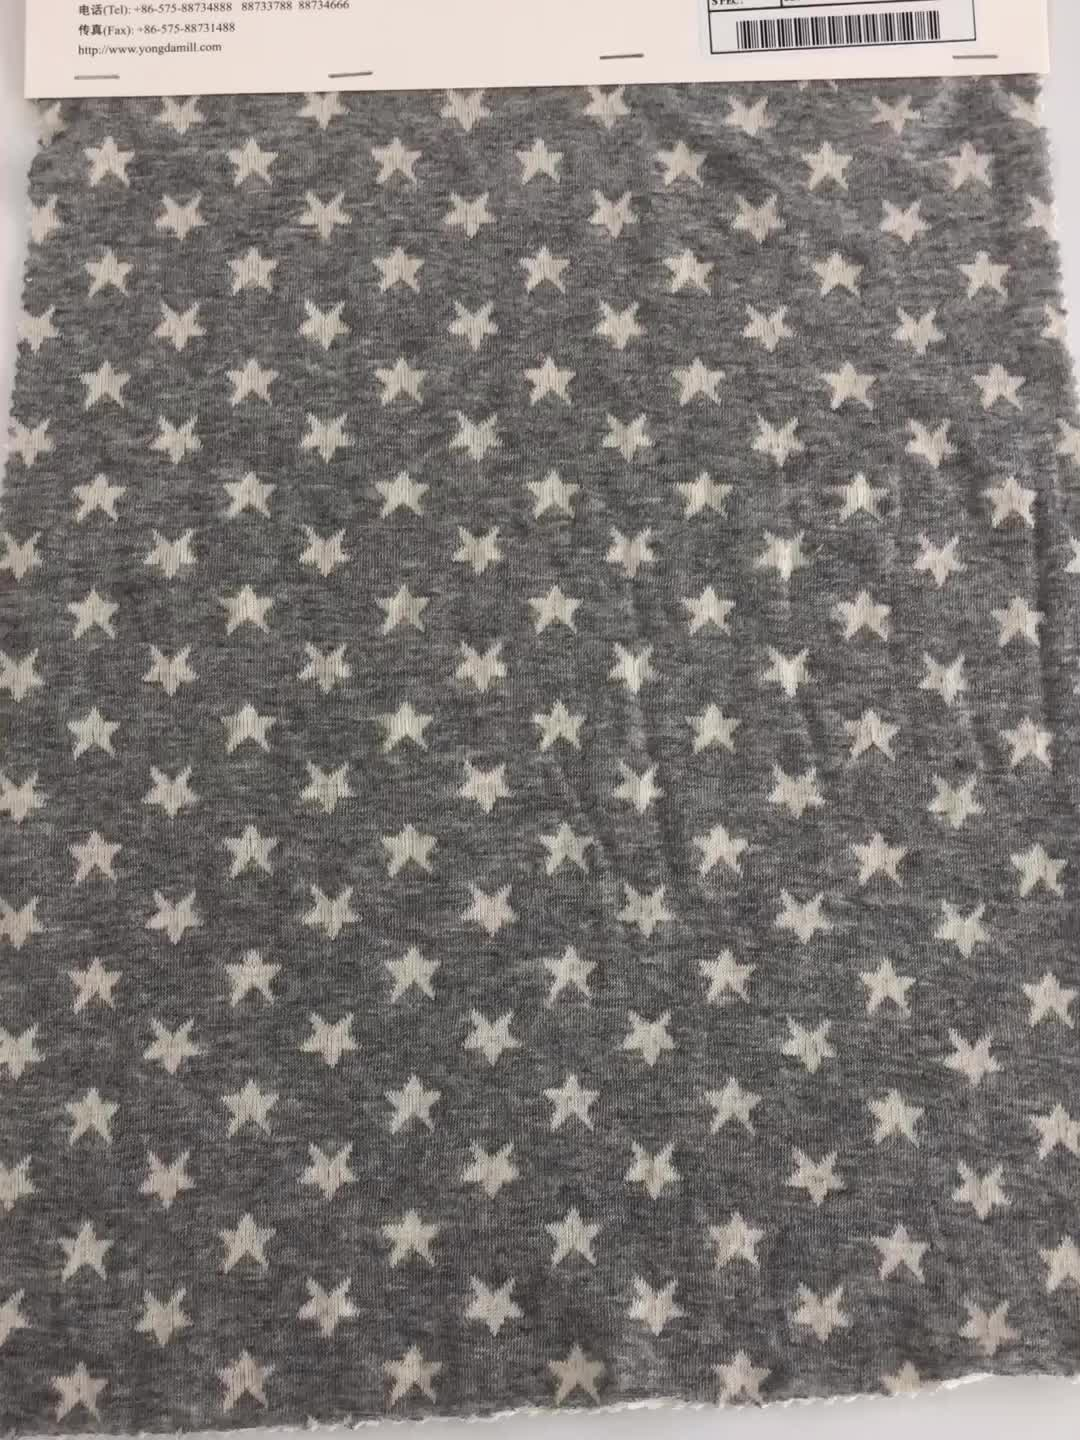 Factory wholesale gray star pattern knitting cotton jacquard fabric for garment